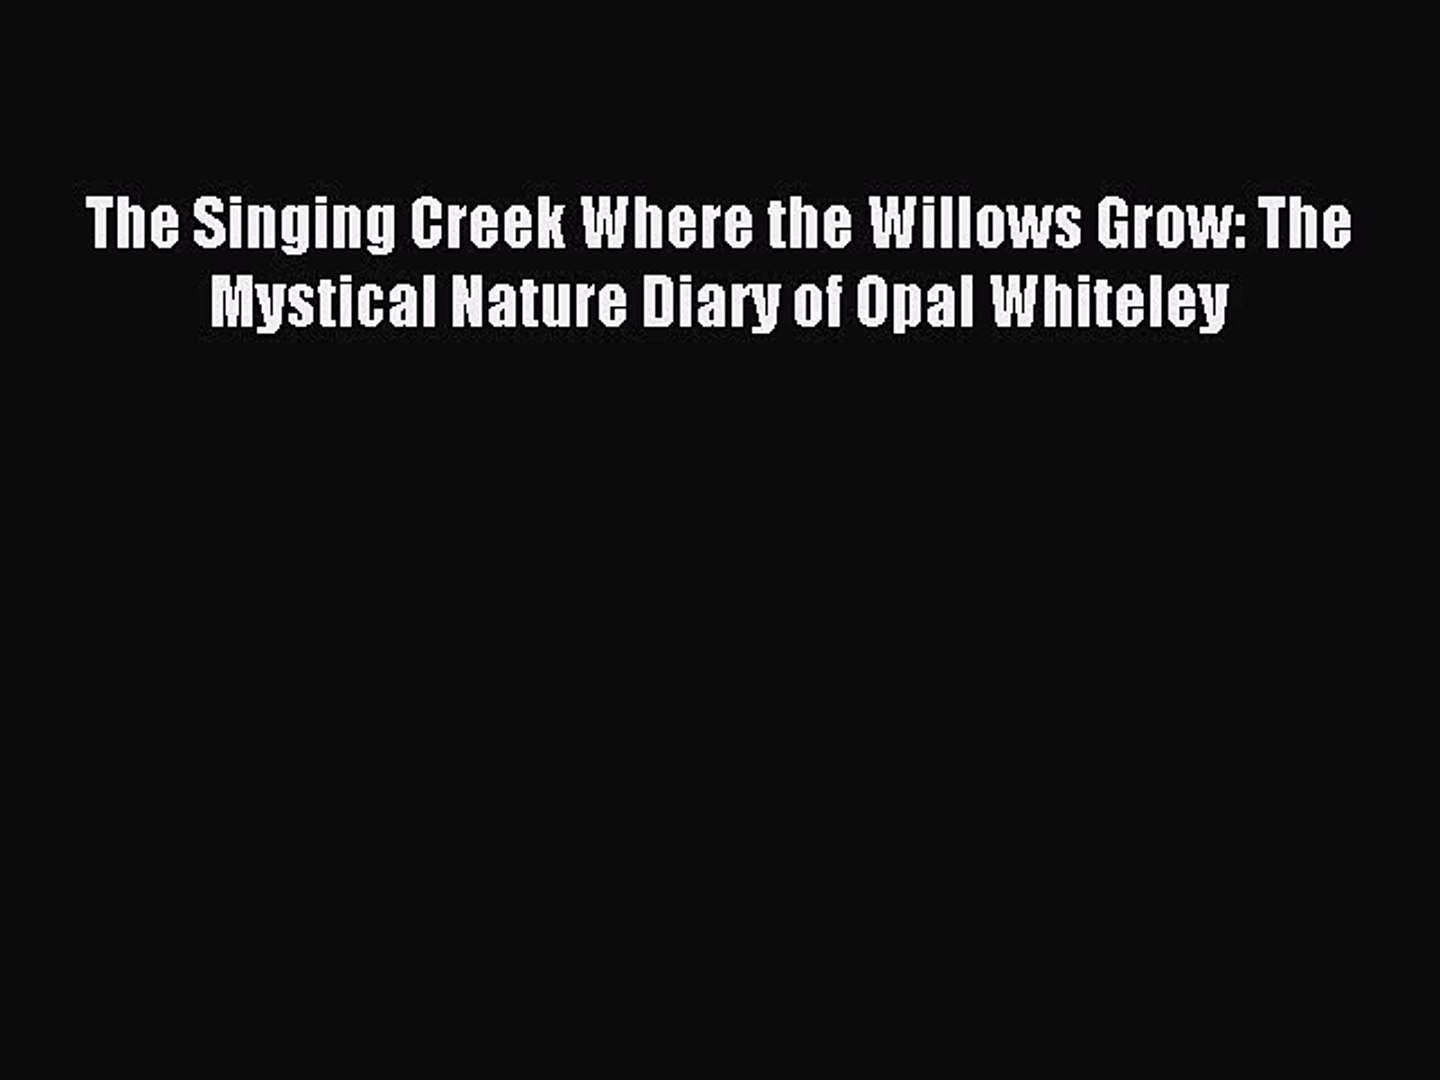 Read The Singing Creek Where the Willows Grow: The Mystical Nature Diary of Opal Whiteley Ebook